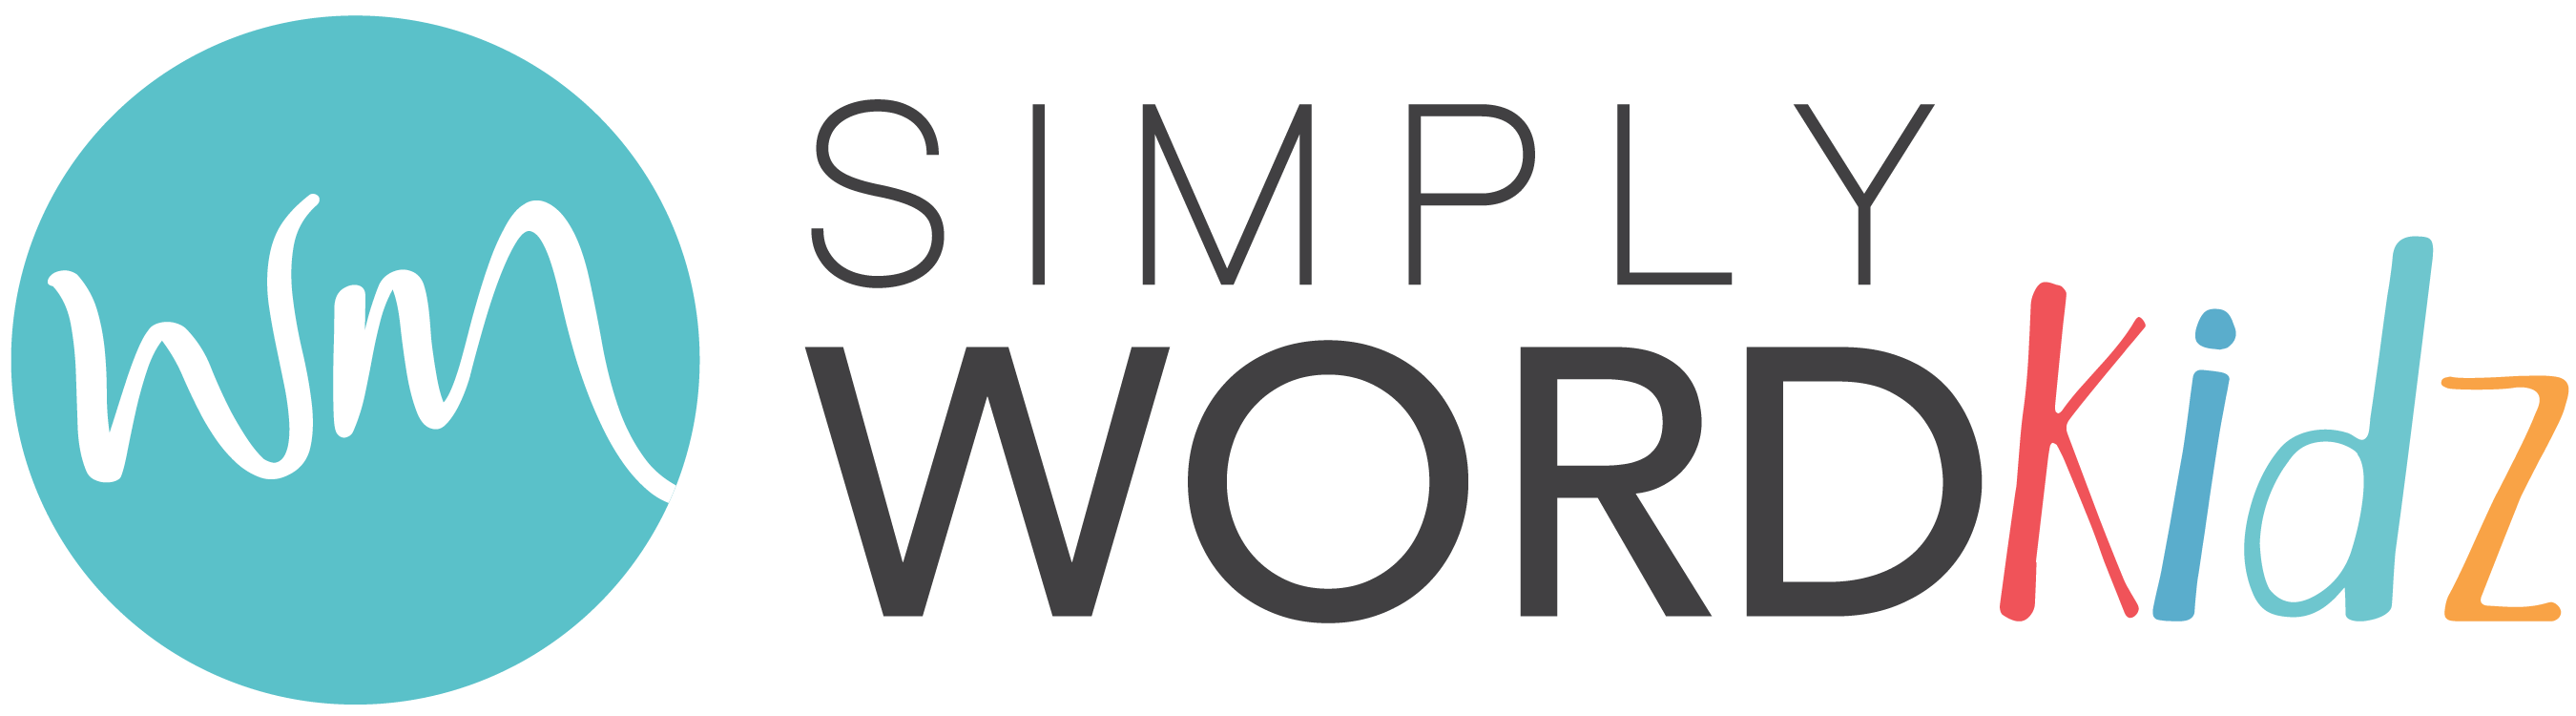 Simply WordKidz Logo.jpg